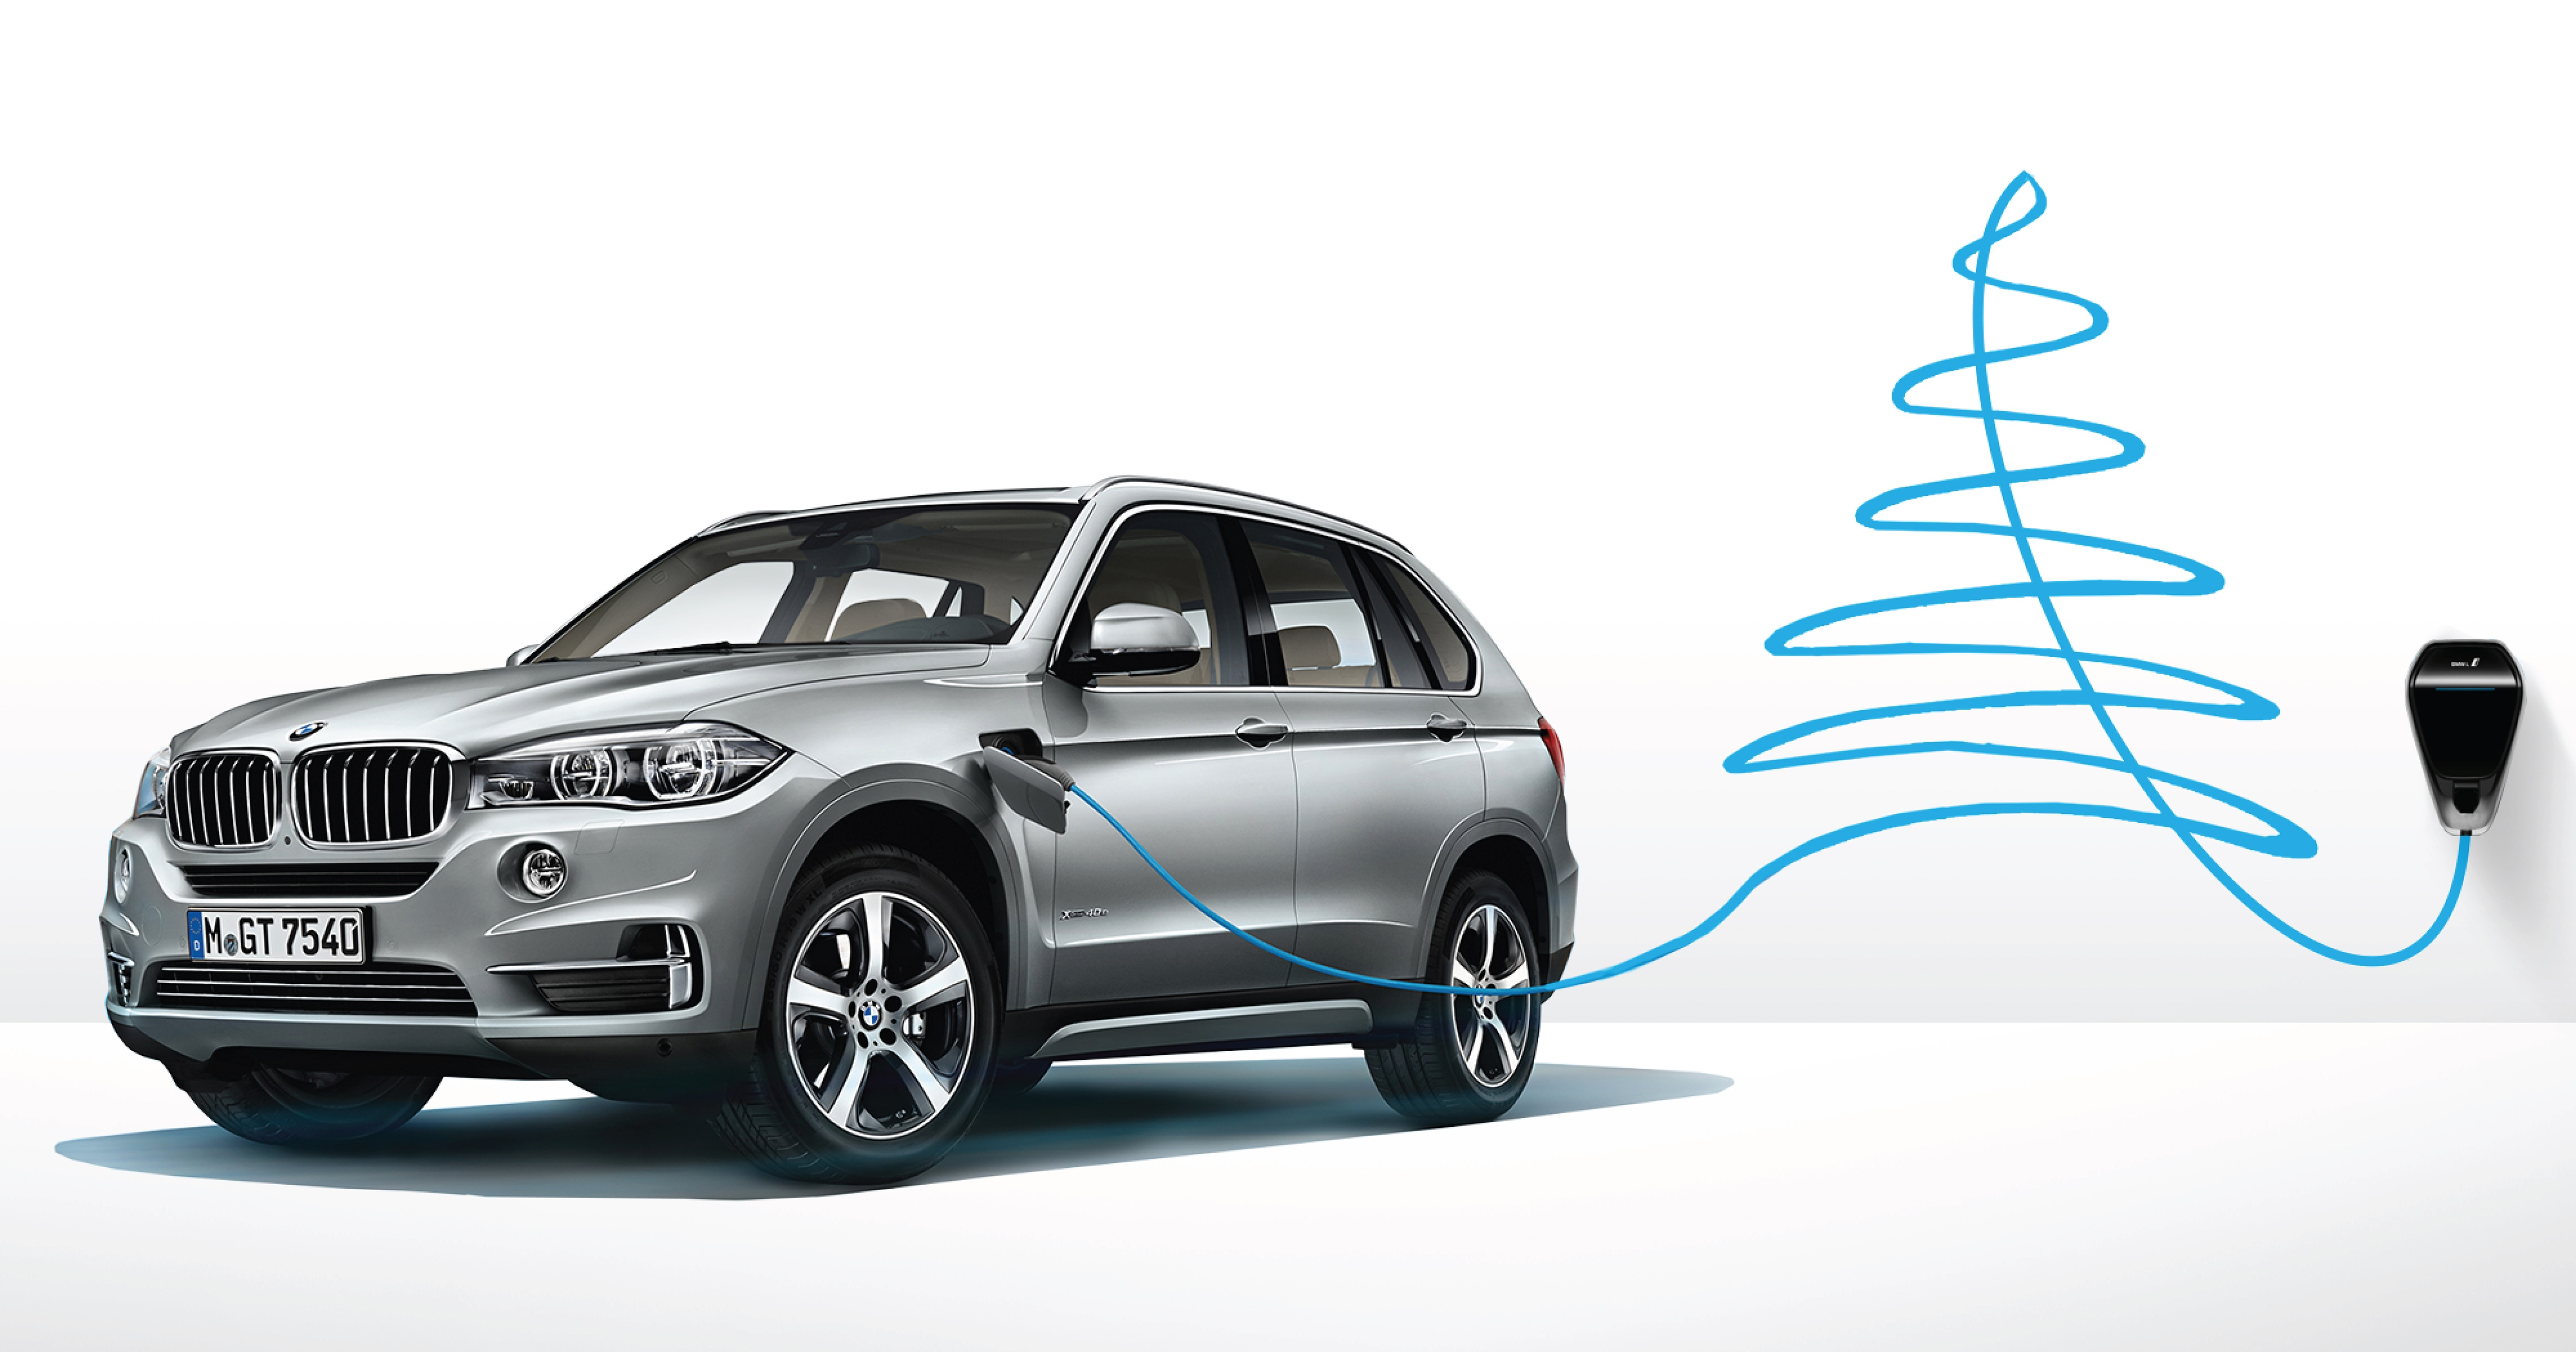 Ad Xtraordinary Xmas Deals On A Brand New Bmw Await You At Auto Bavaria This Weekend